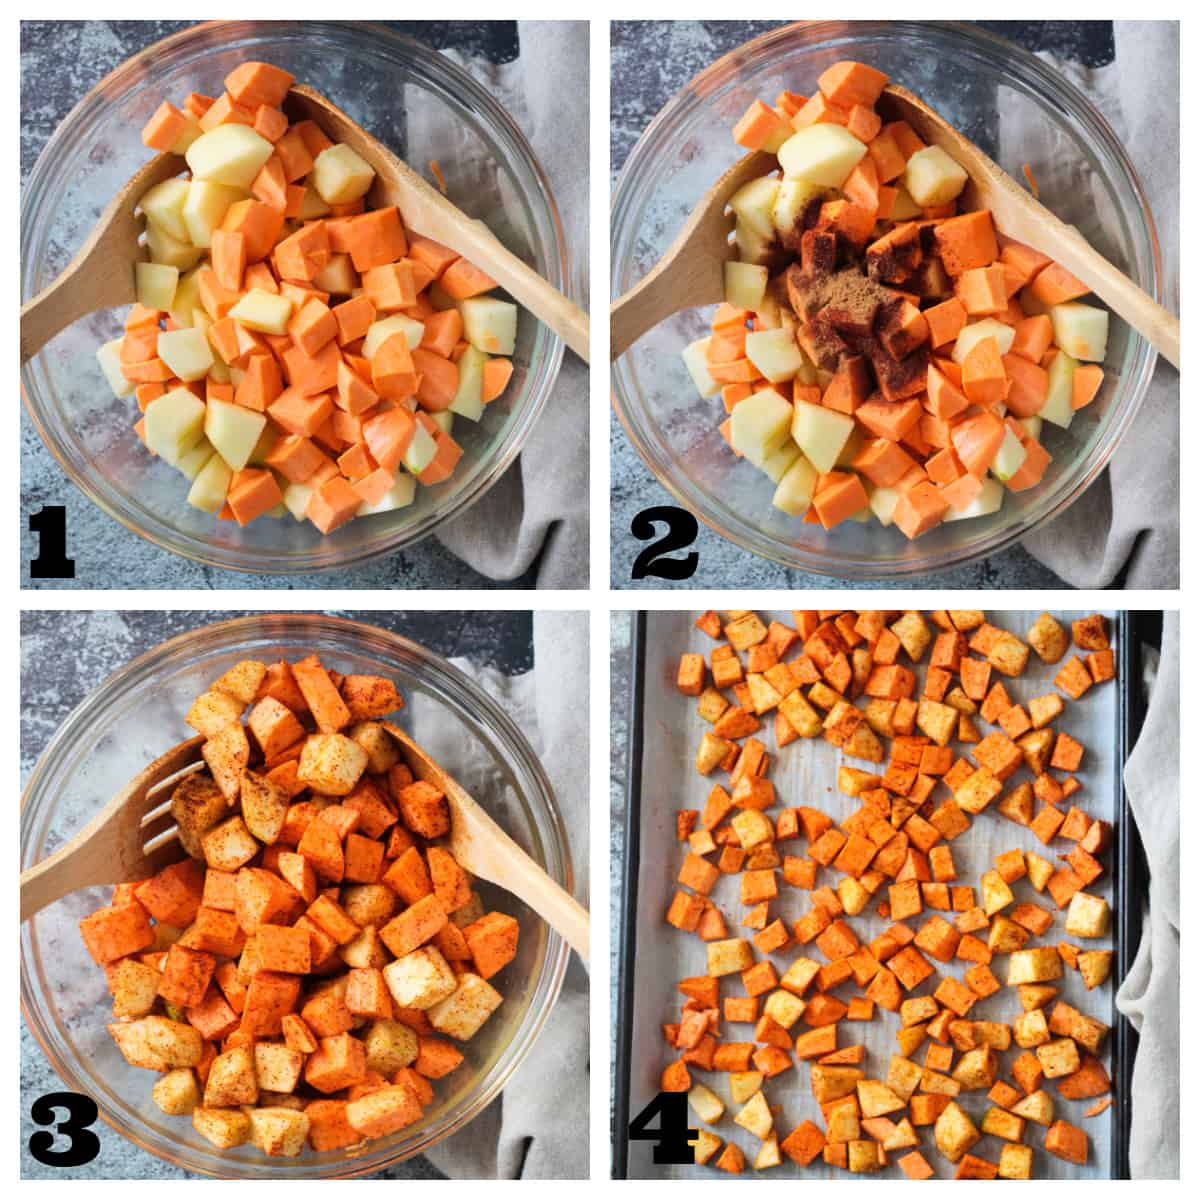 4 photo collage of seasoning sweet potatoes and apples and spreading on a baking sheet.